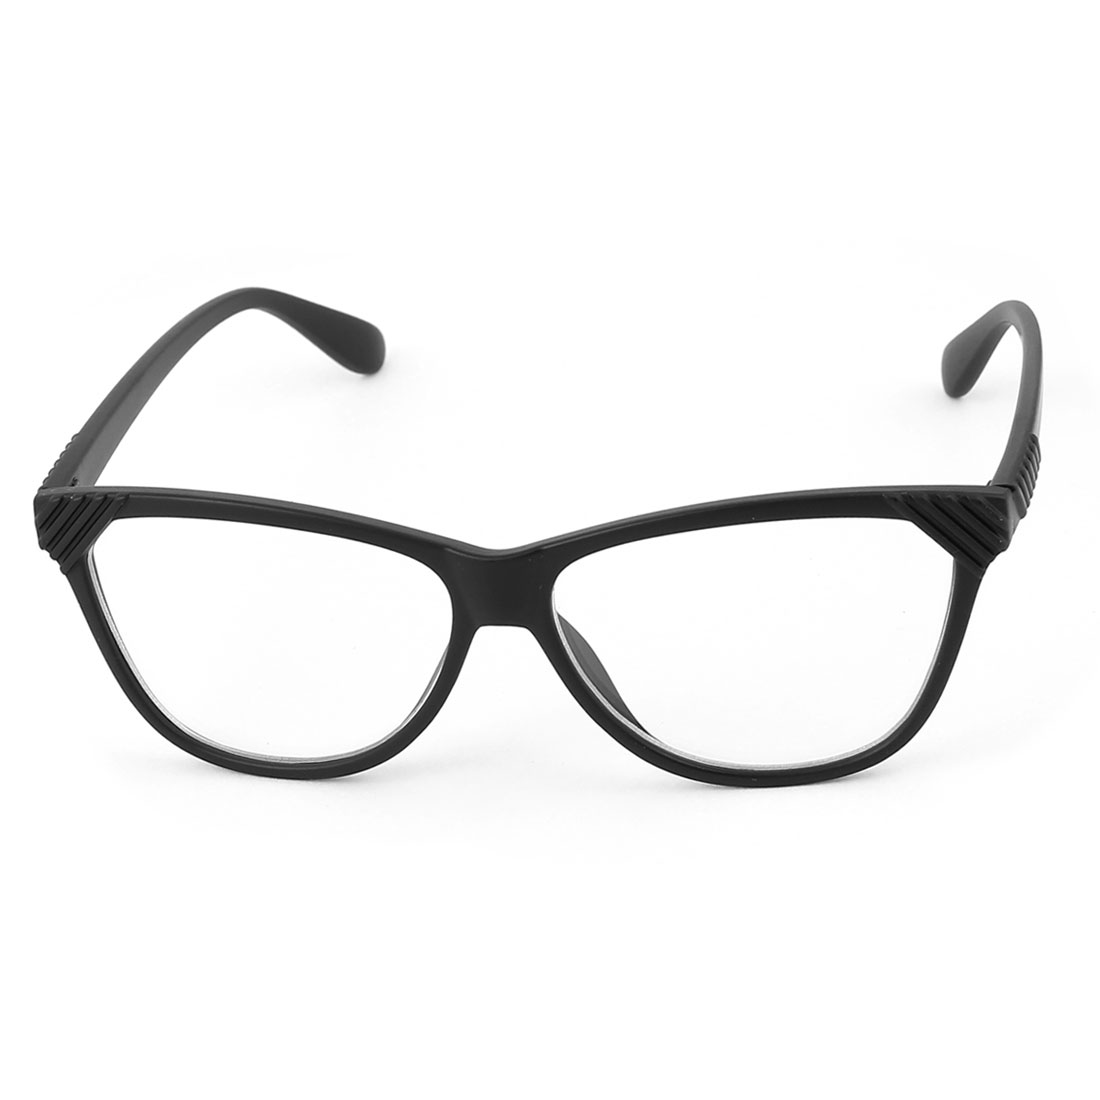 Plastic Arm Single Bridge Clear Lens Plain Glasses Eyeglasses Plano Spectacles Black